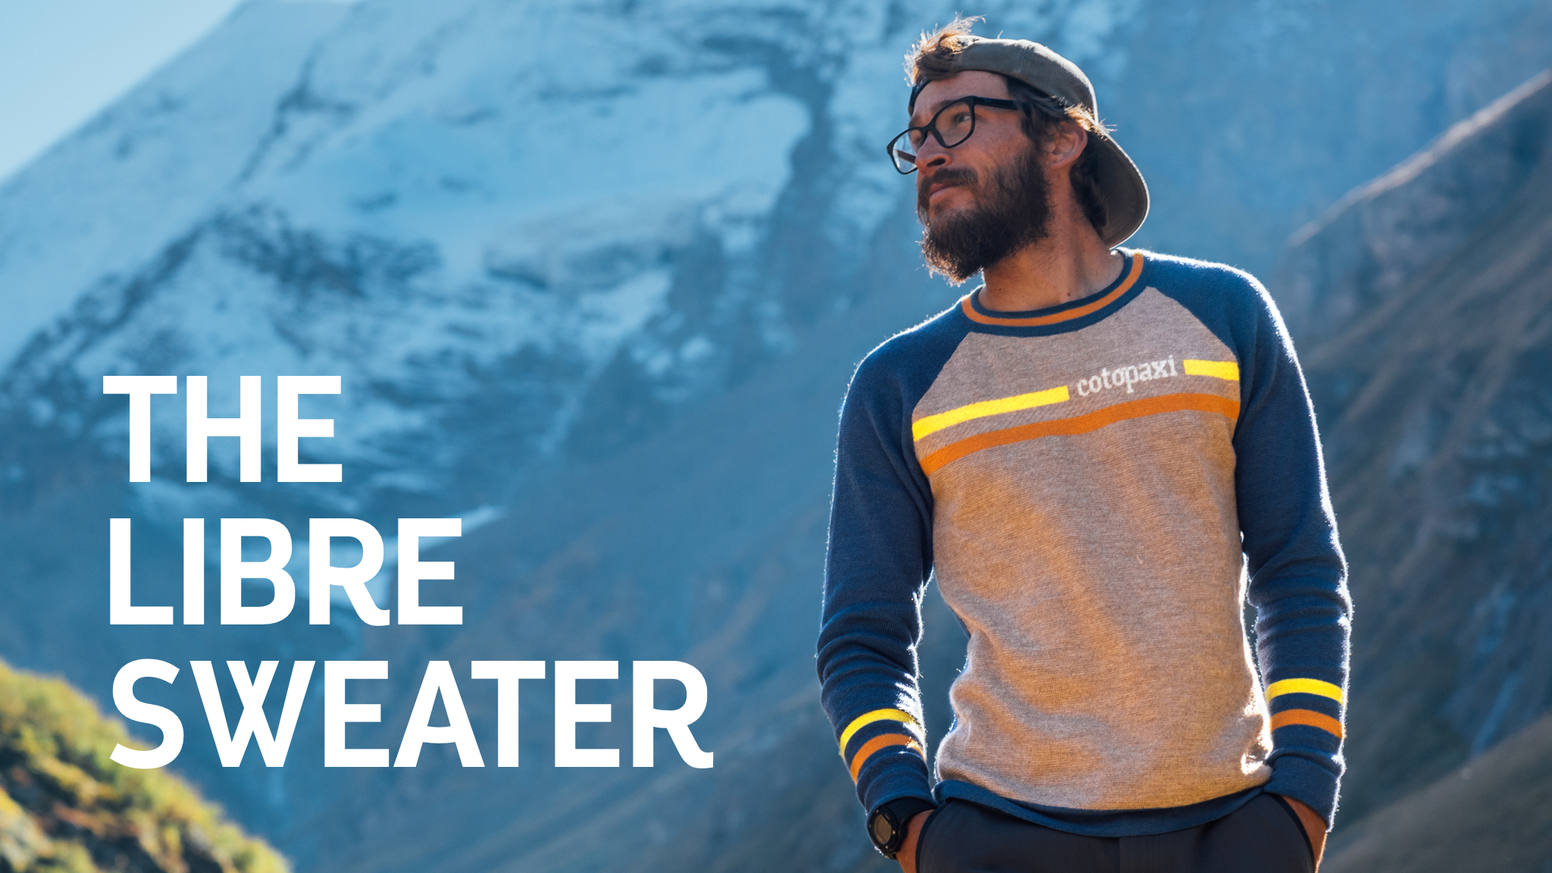 Knit with ultrasoft, naturally insulating llama fiber, the Libre is engineered for the city, the summit, and everything in between.